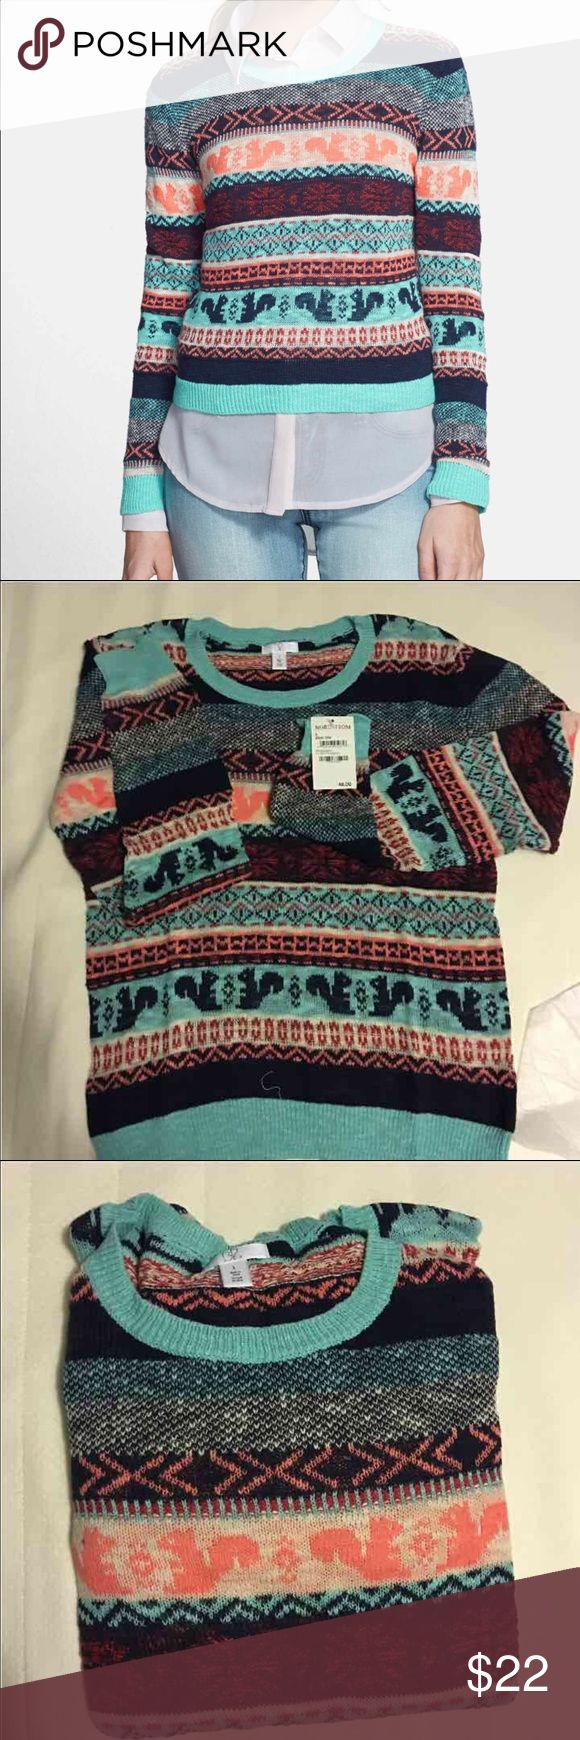 Nordstrom BP pullover size L BP pullover size L Junior Perfect for Fall & layers   Please check out our store :) We have UGG, NIKE, The North Face, Under Armour, Trina Turk, Ralph Lauren, Gymboree for boys and girls, Puma, Abercrombie & Fitch, Lacoste, Tommy Bahama, Steve Madden, Stride Rite, Gap & more  We love to hunt for great deals to pass on to you!!! We carry dress, blouses, handbags, boys shoes, sneakers, boots, backpacks, sweaters, jackets!!!  Happy Shopping!!! All Authentic…